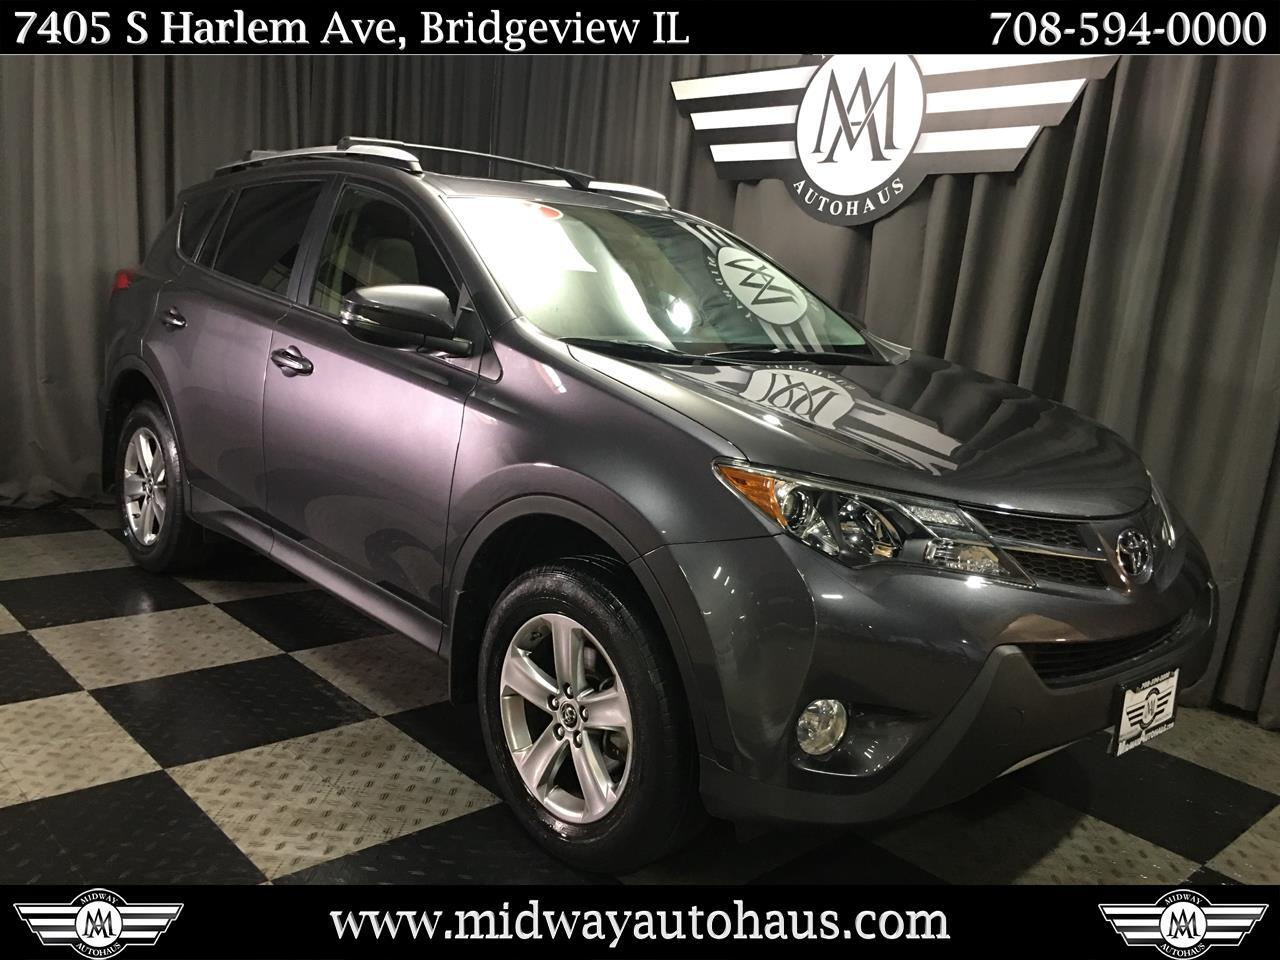 Pre-Owned 2015 Toyota RAV4 AWD 4dr XLE (Natl)